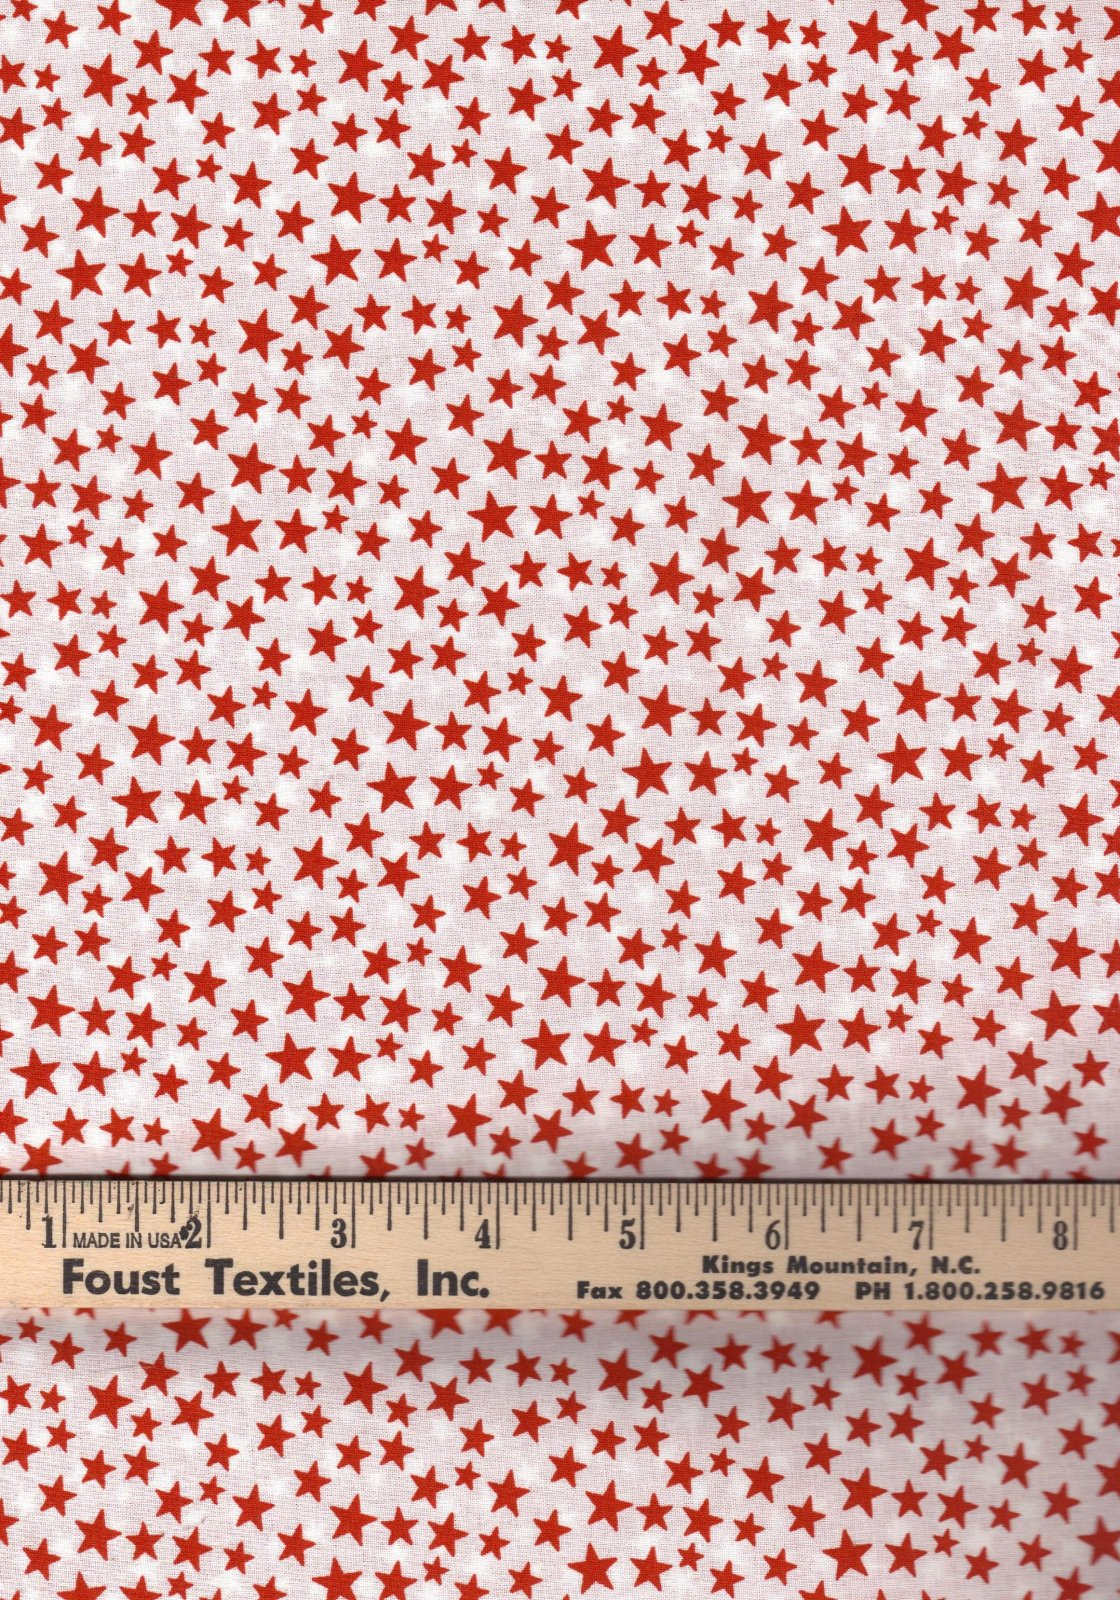 Made in the USA 48489 Red/White